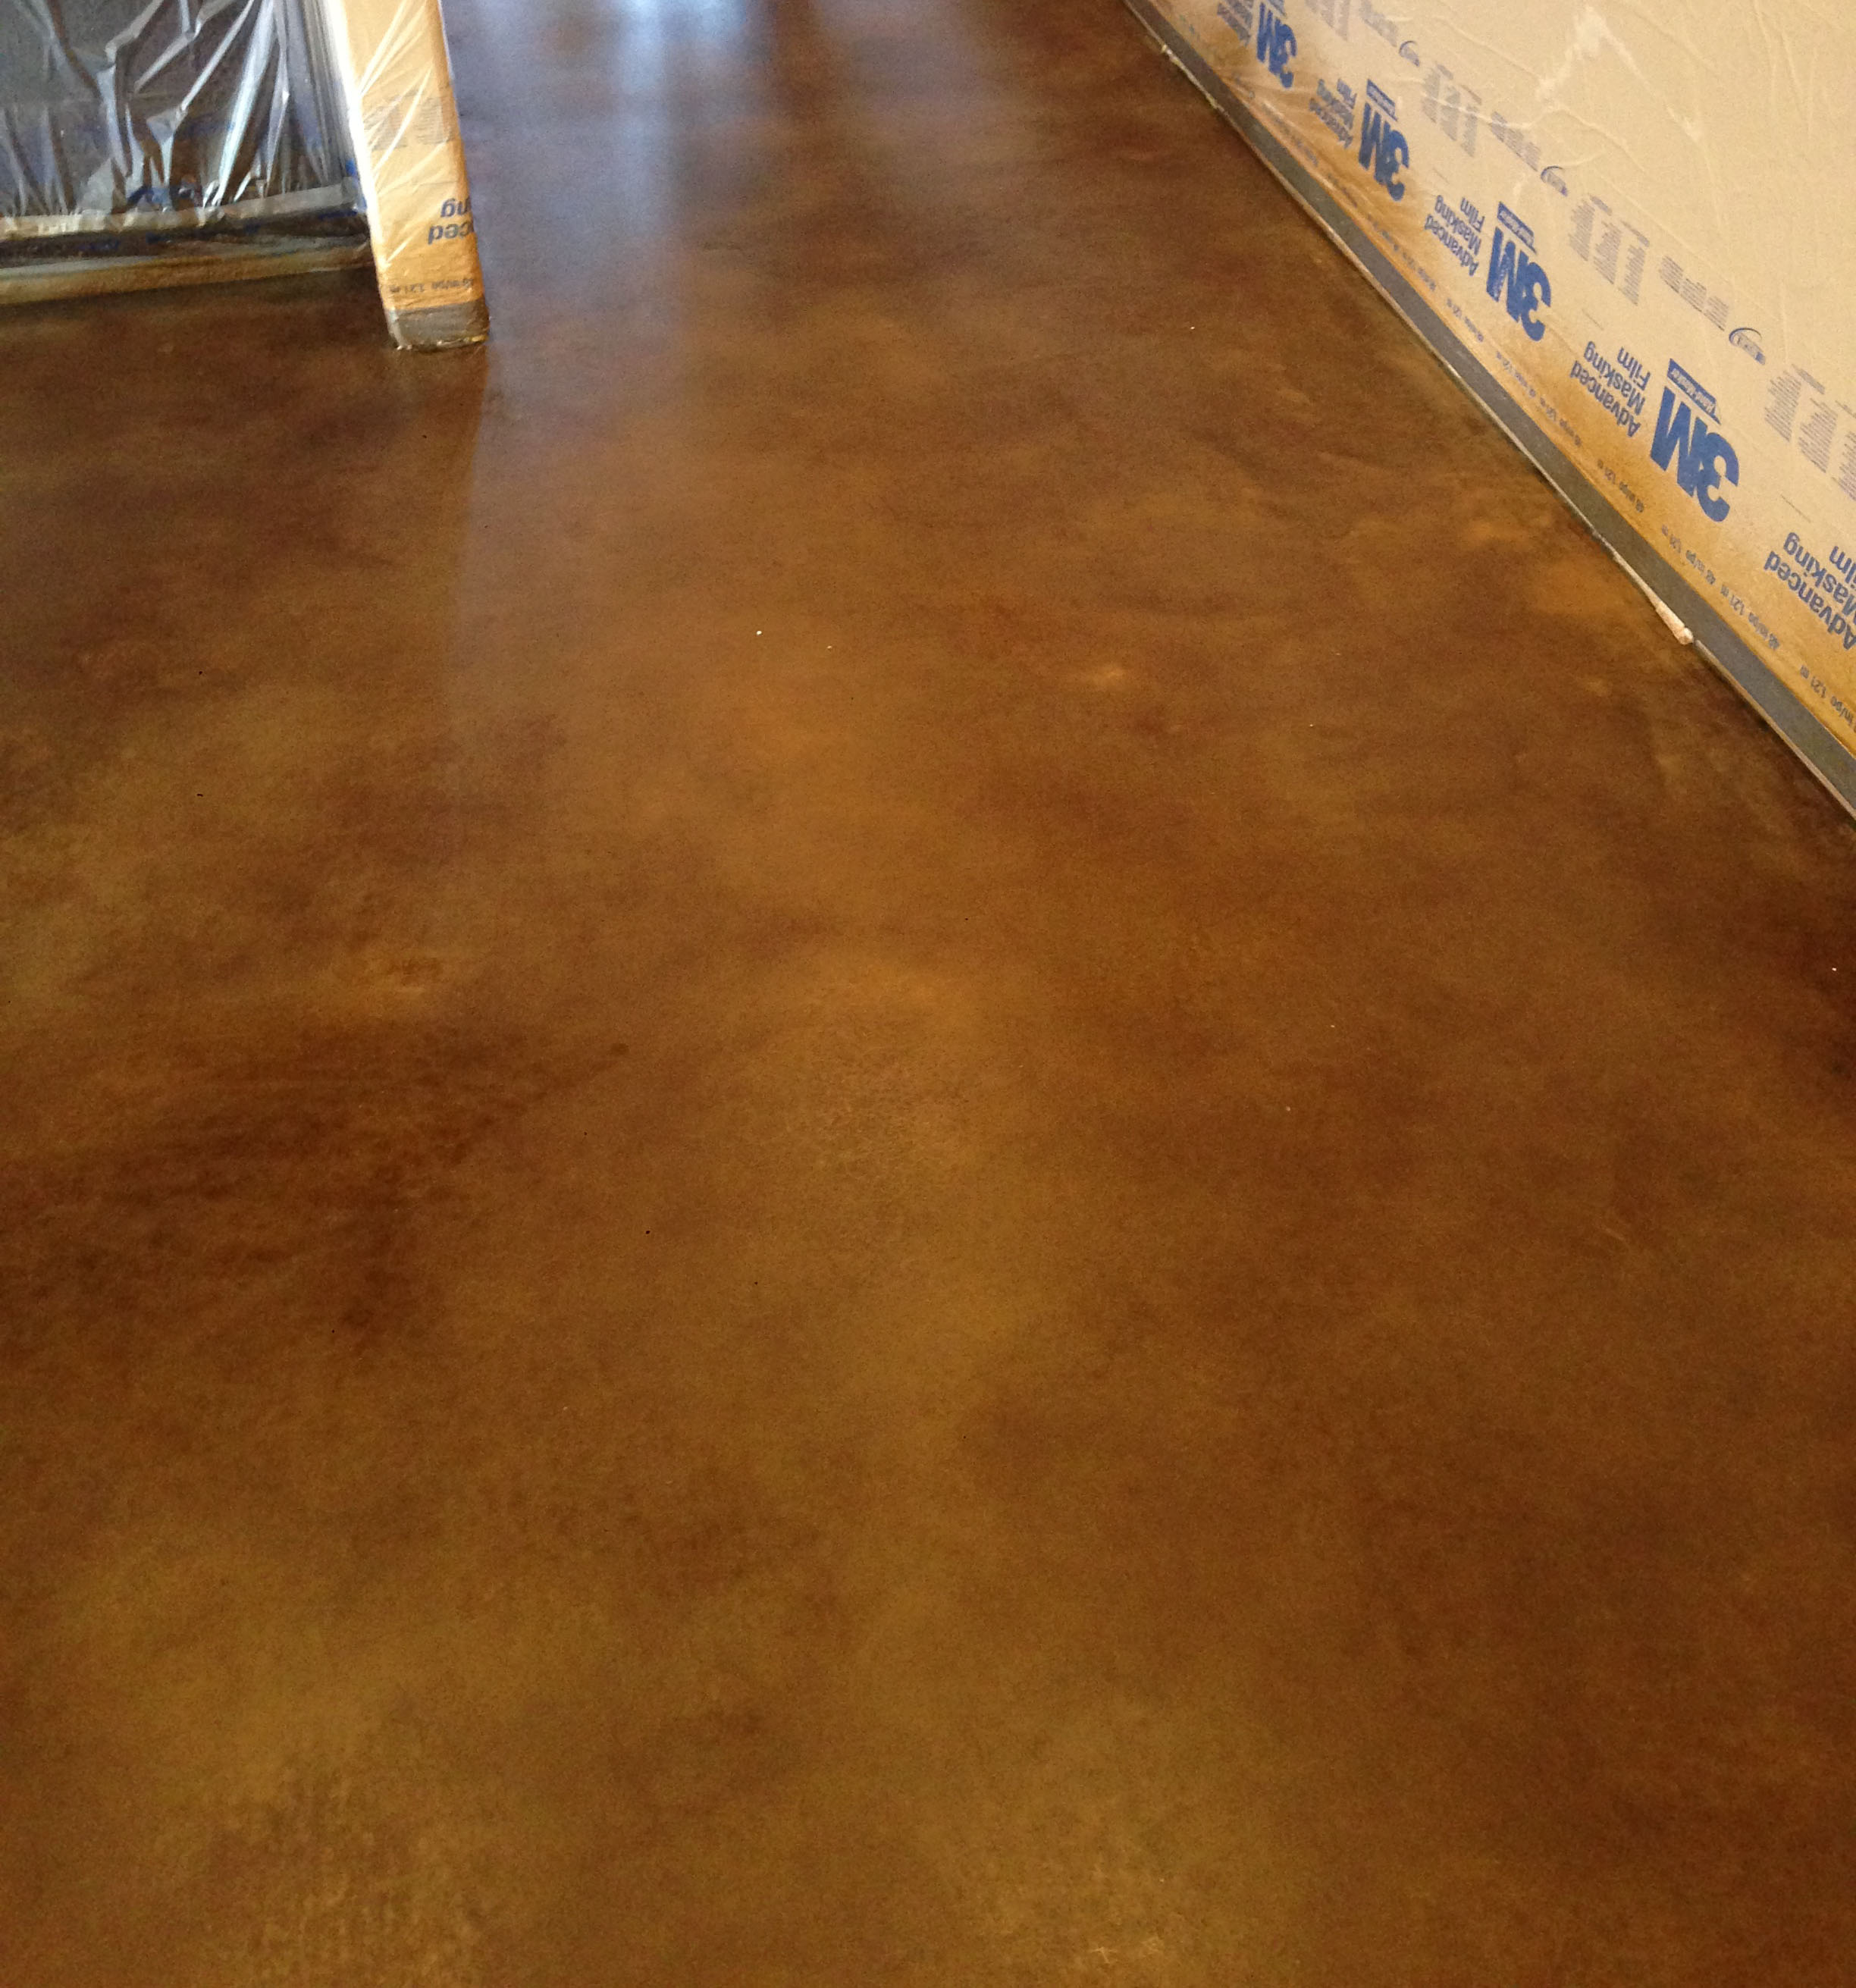 This Is A Concrete Floor Which Was Good Candidate For Dye And Polishing But The Client Did Not Want Shiny As An Alternative To Overlay